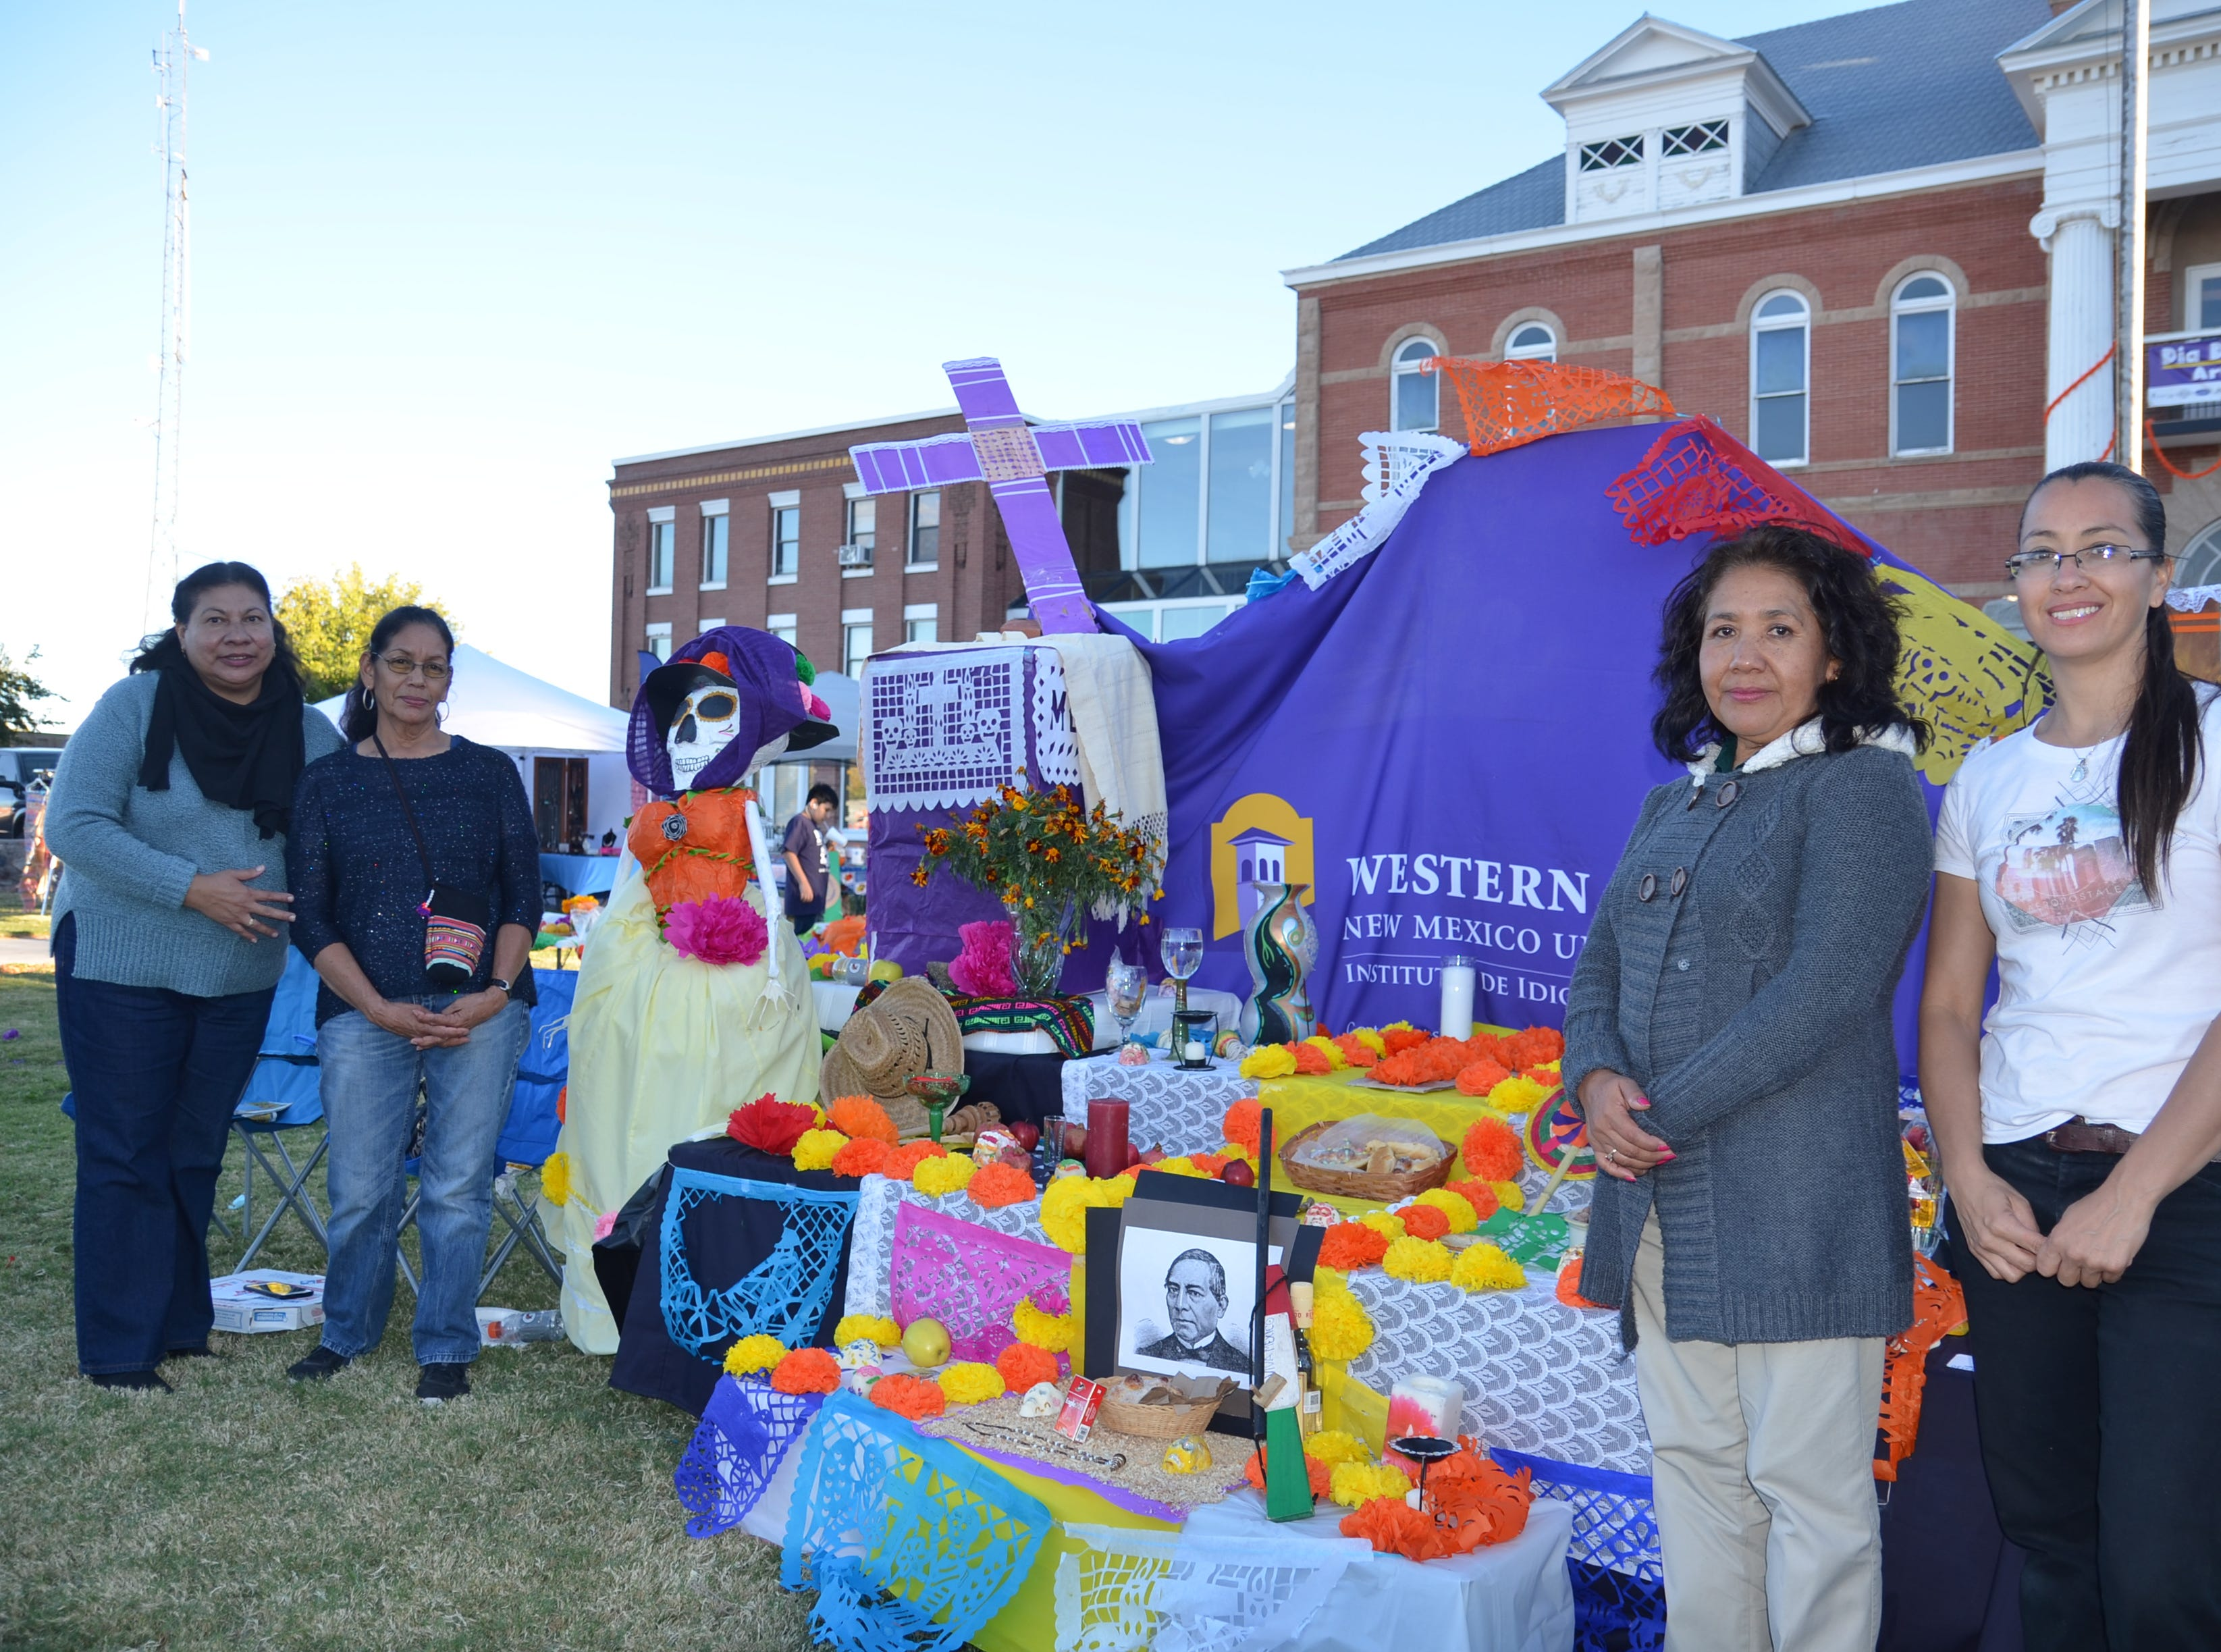 Representatives of the Language Institute of Western New Mexico University won first place for the altar and ofrenda competition. Their altar was dedicated to Mexican president Benito Juarez.